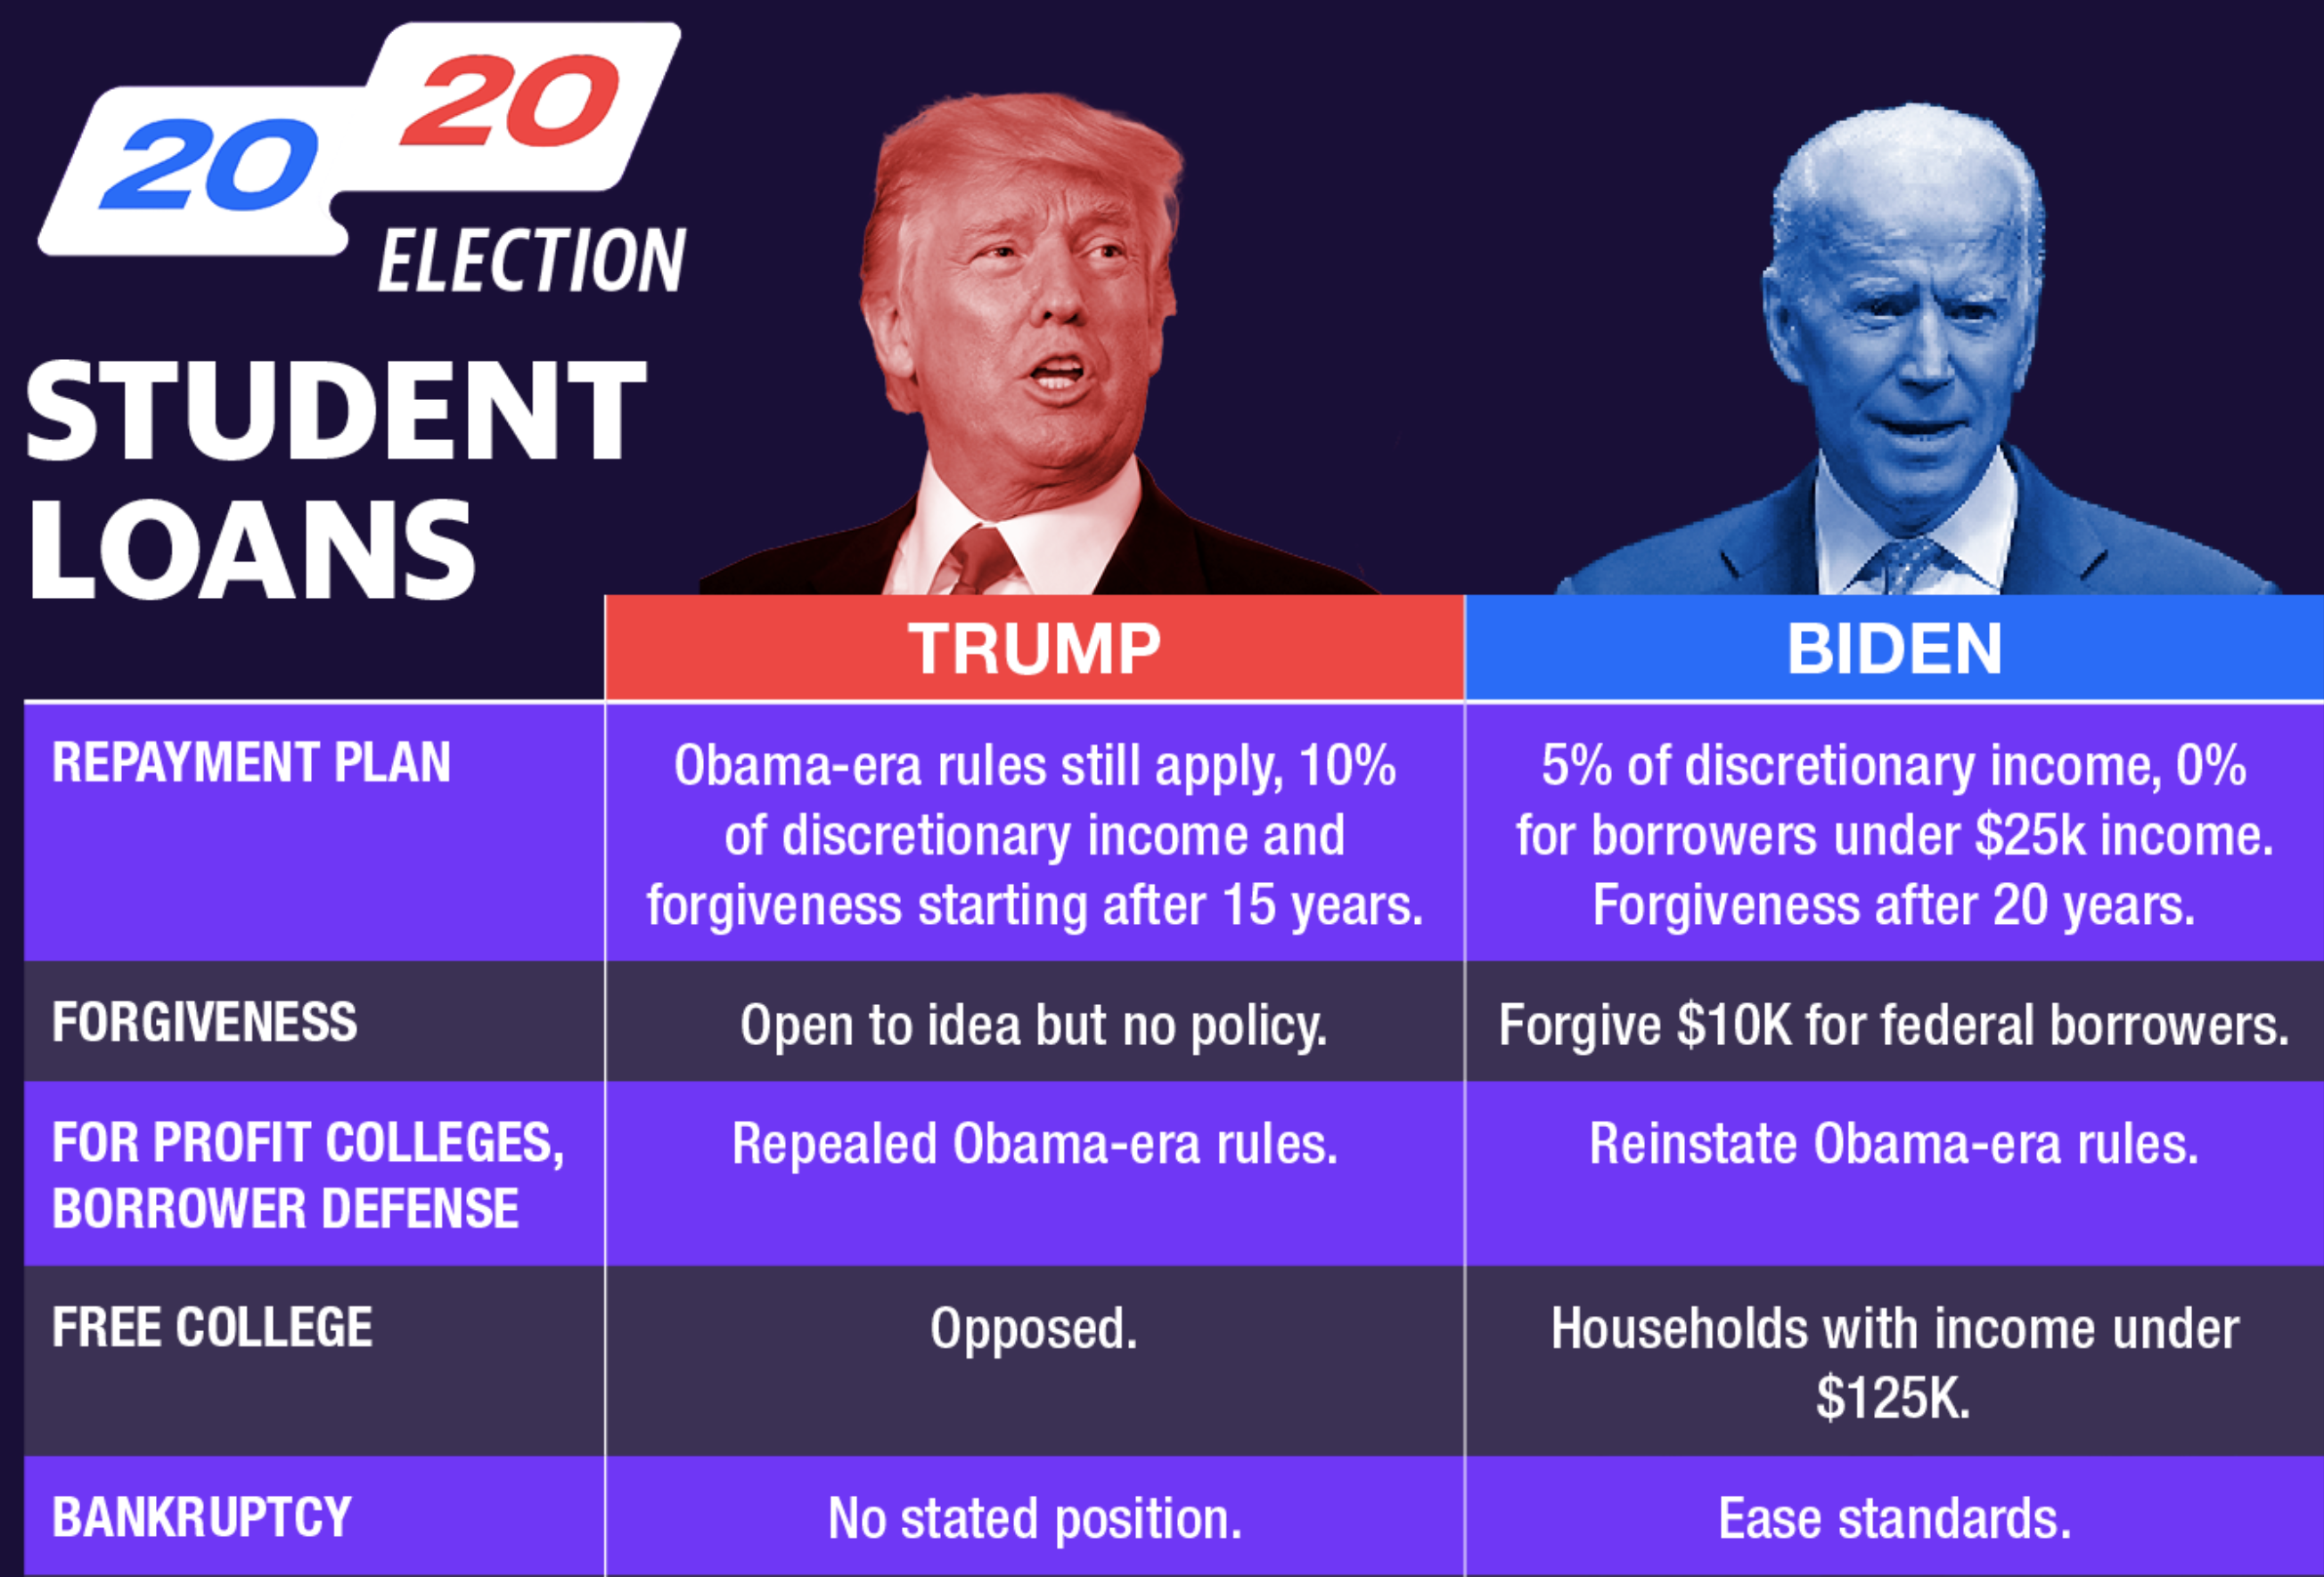 Trump v. Biden: Here's what's at stake for student loan borrowers